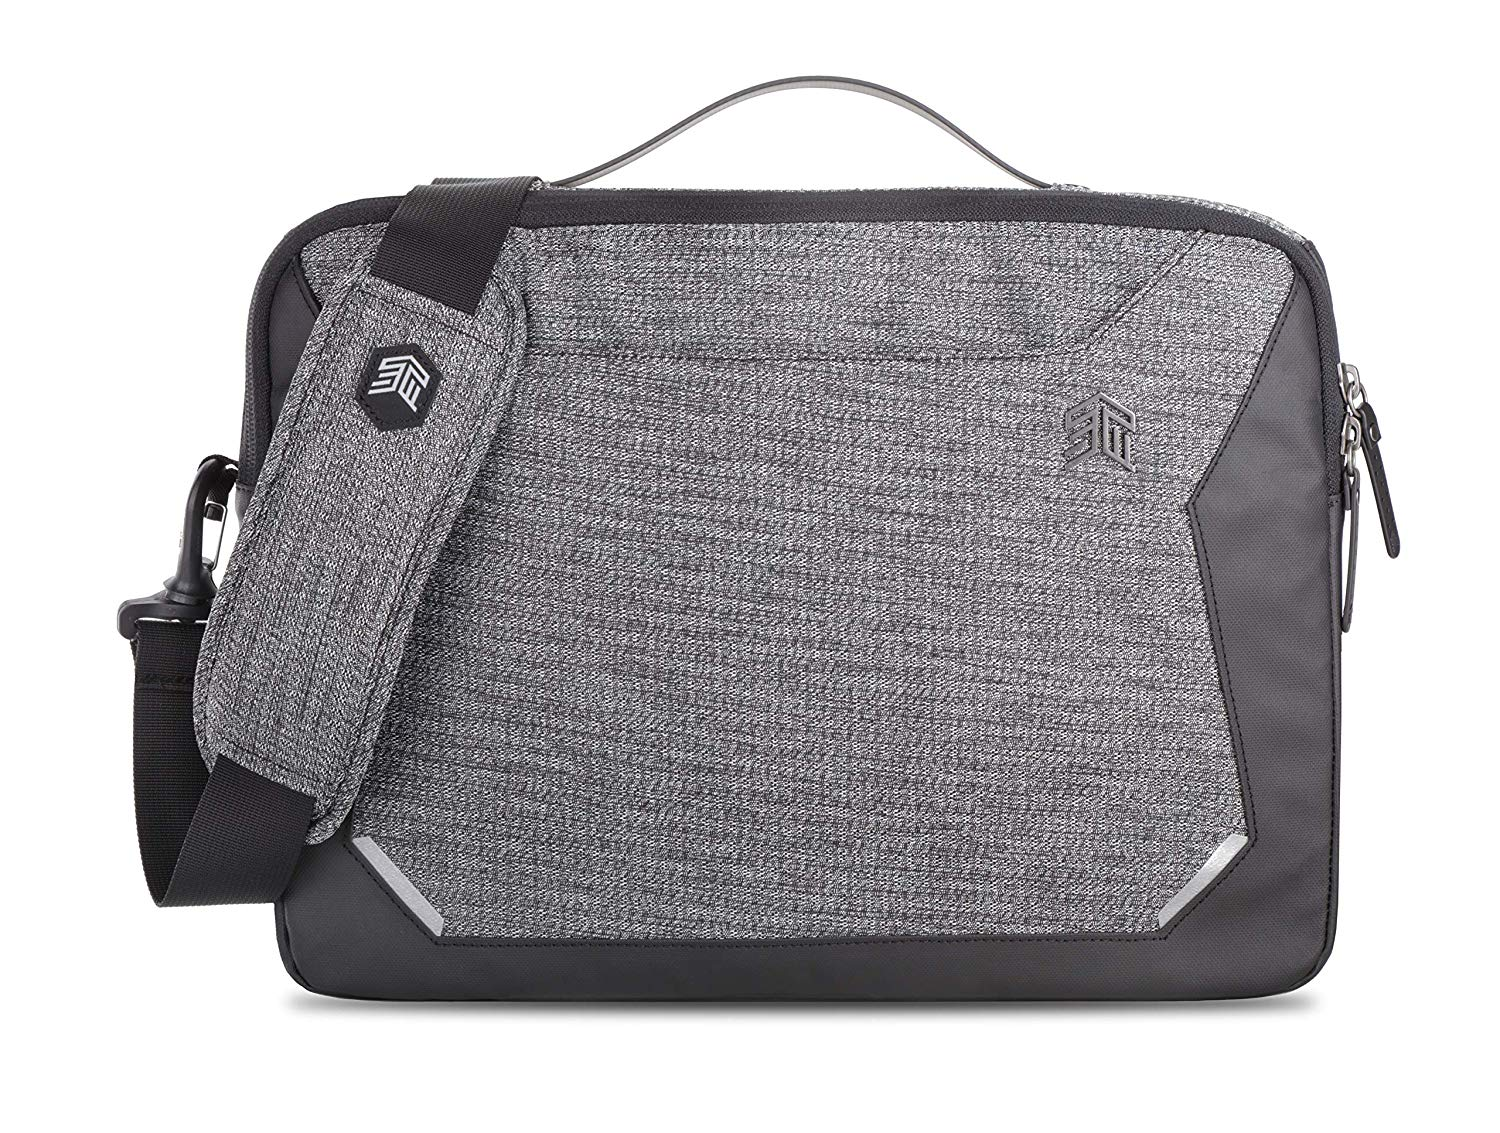 STM Myth Fleece-Lined Brief Case with Removable Strap for 15